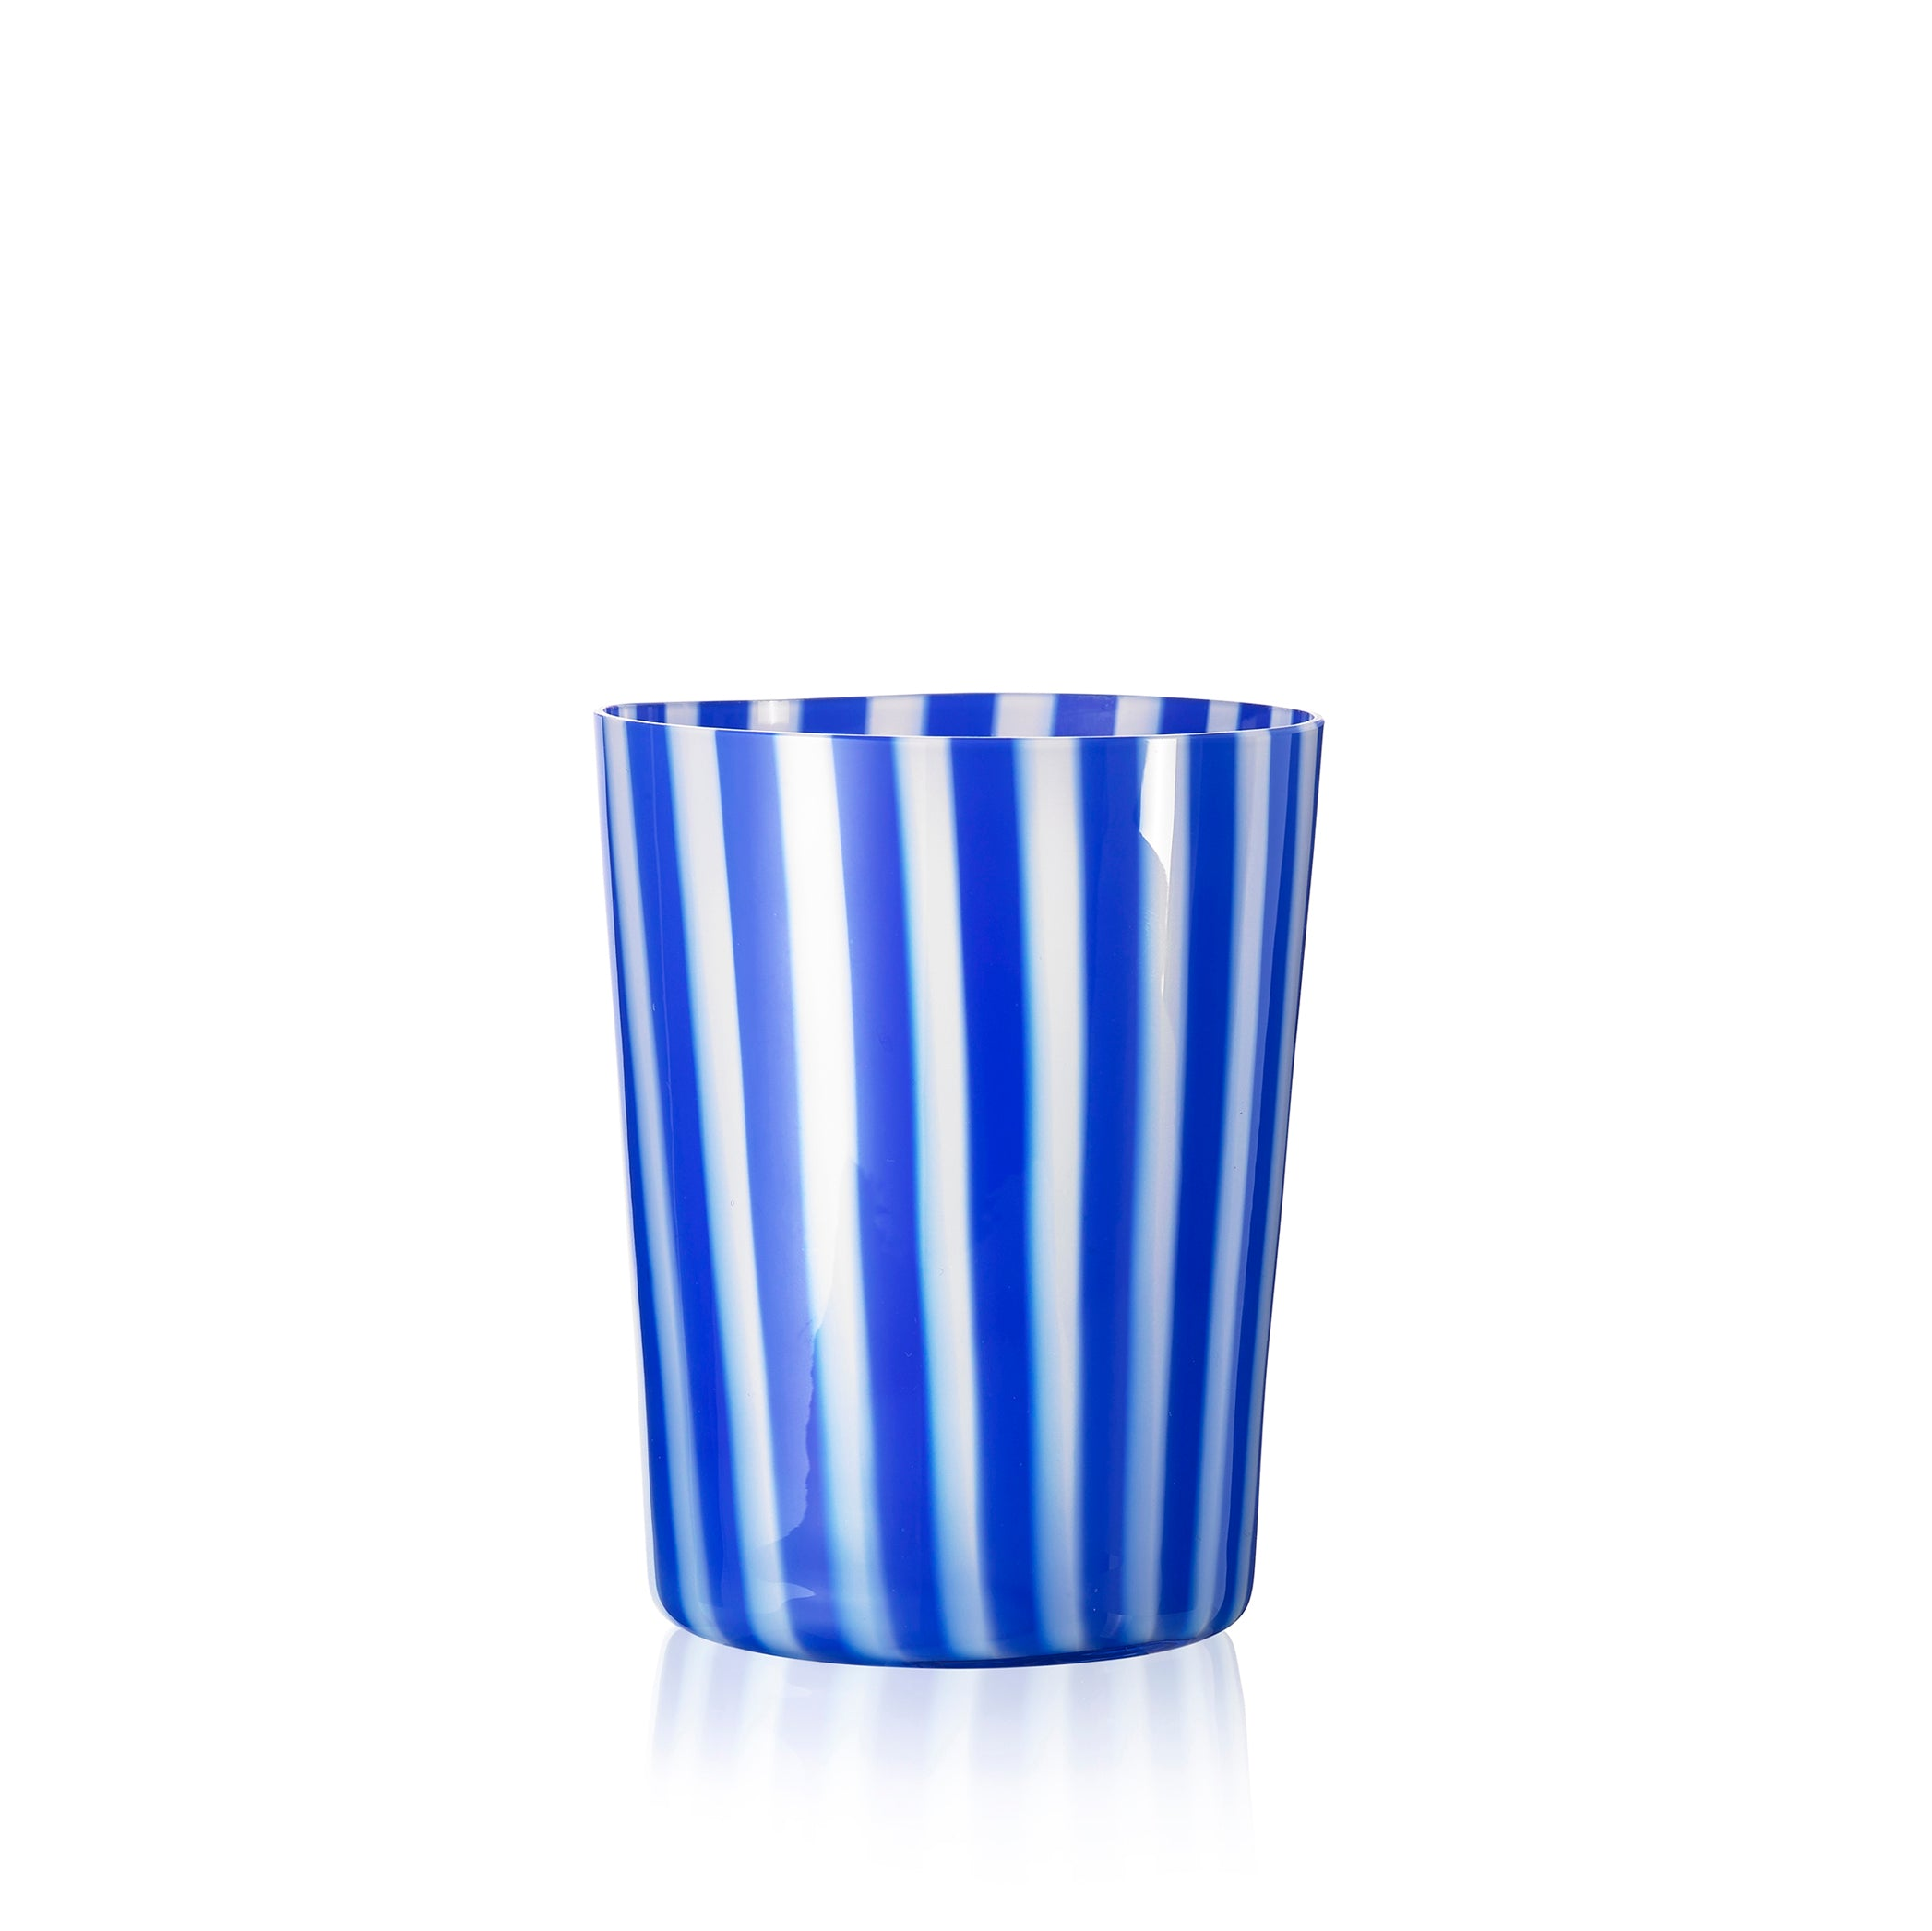 Handblown 'Pastelli' Glass Tumbler, Designed by LPWK in Dark Blue and White Stripe